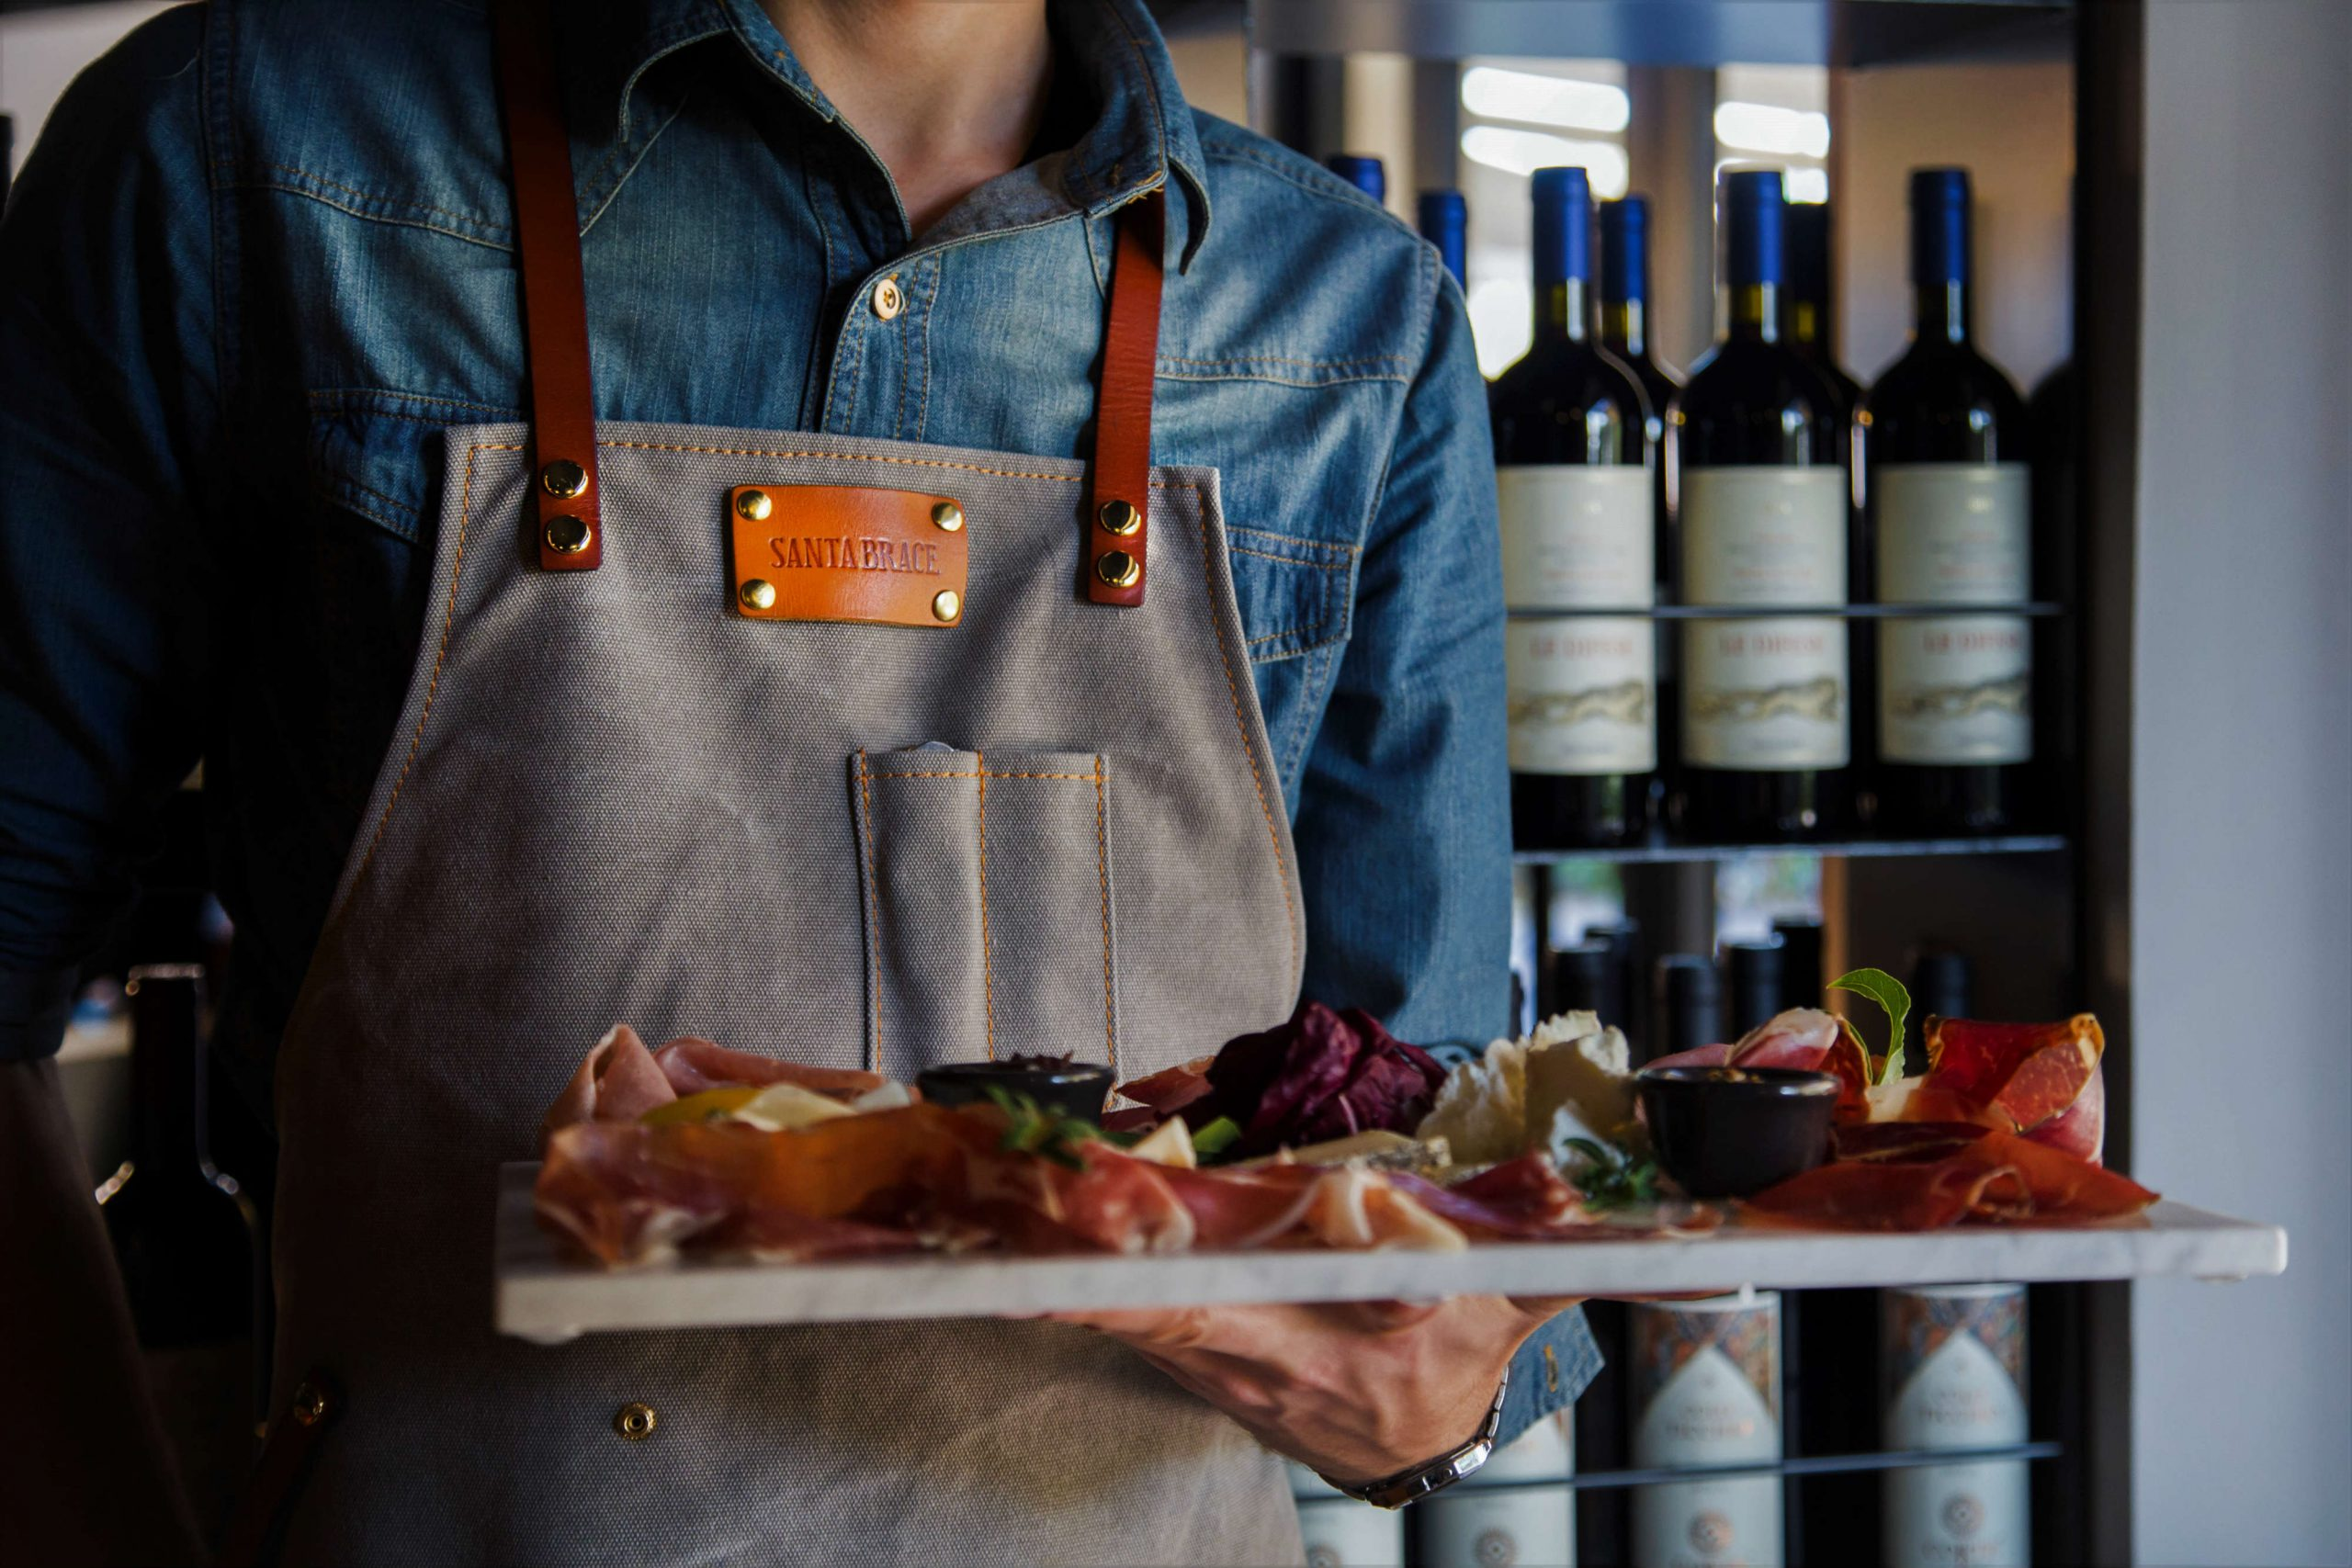 Santa Brace in Rome's Colli Portuensi district is aiming to be the best steakhouse in Rome. Expect barbeque, grill, tartare, charcuterie and burgers.